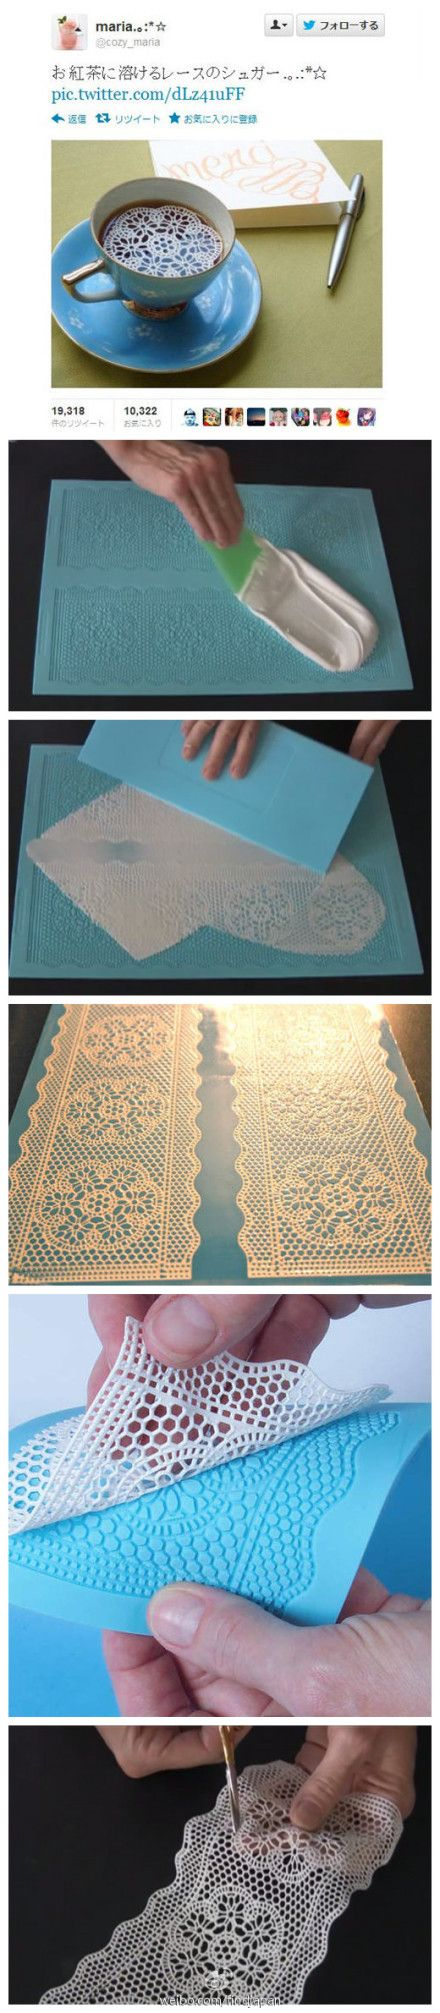 Lace Sugar!!!!! how cool is this! @Vicki Smallwood John